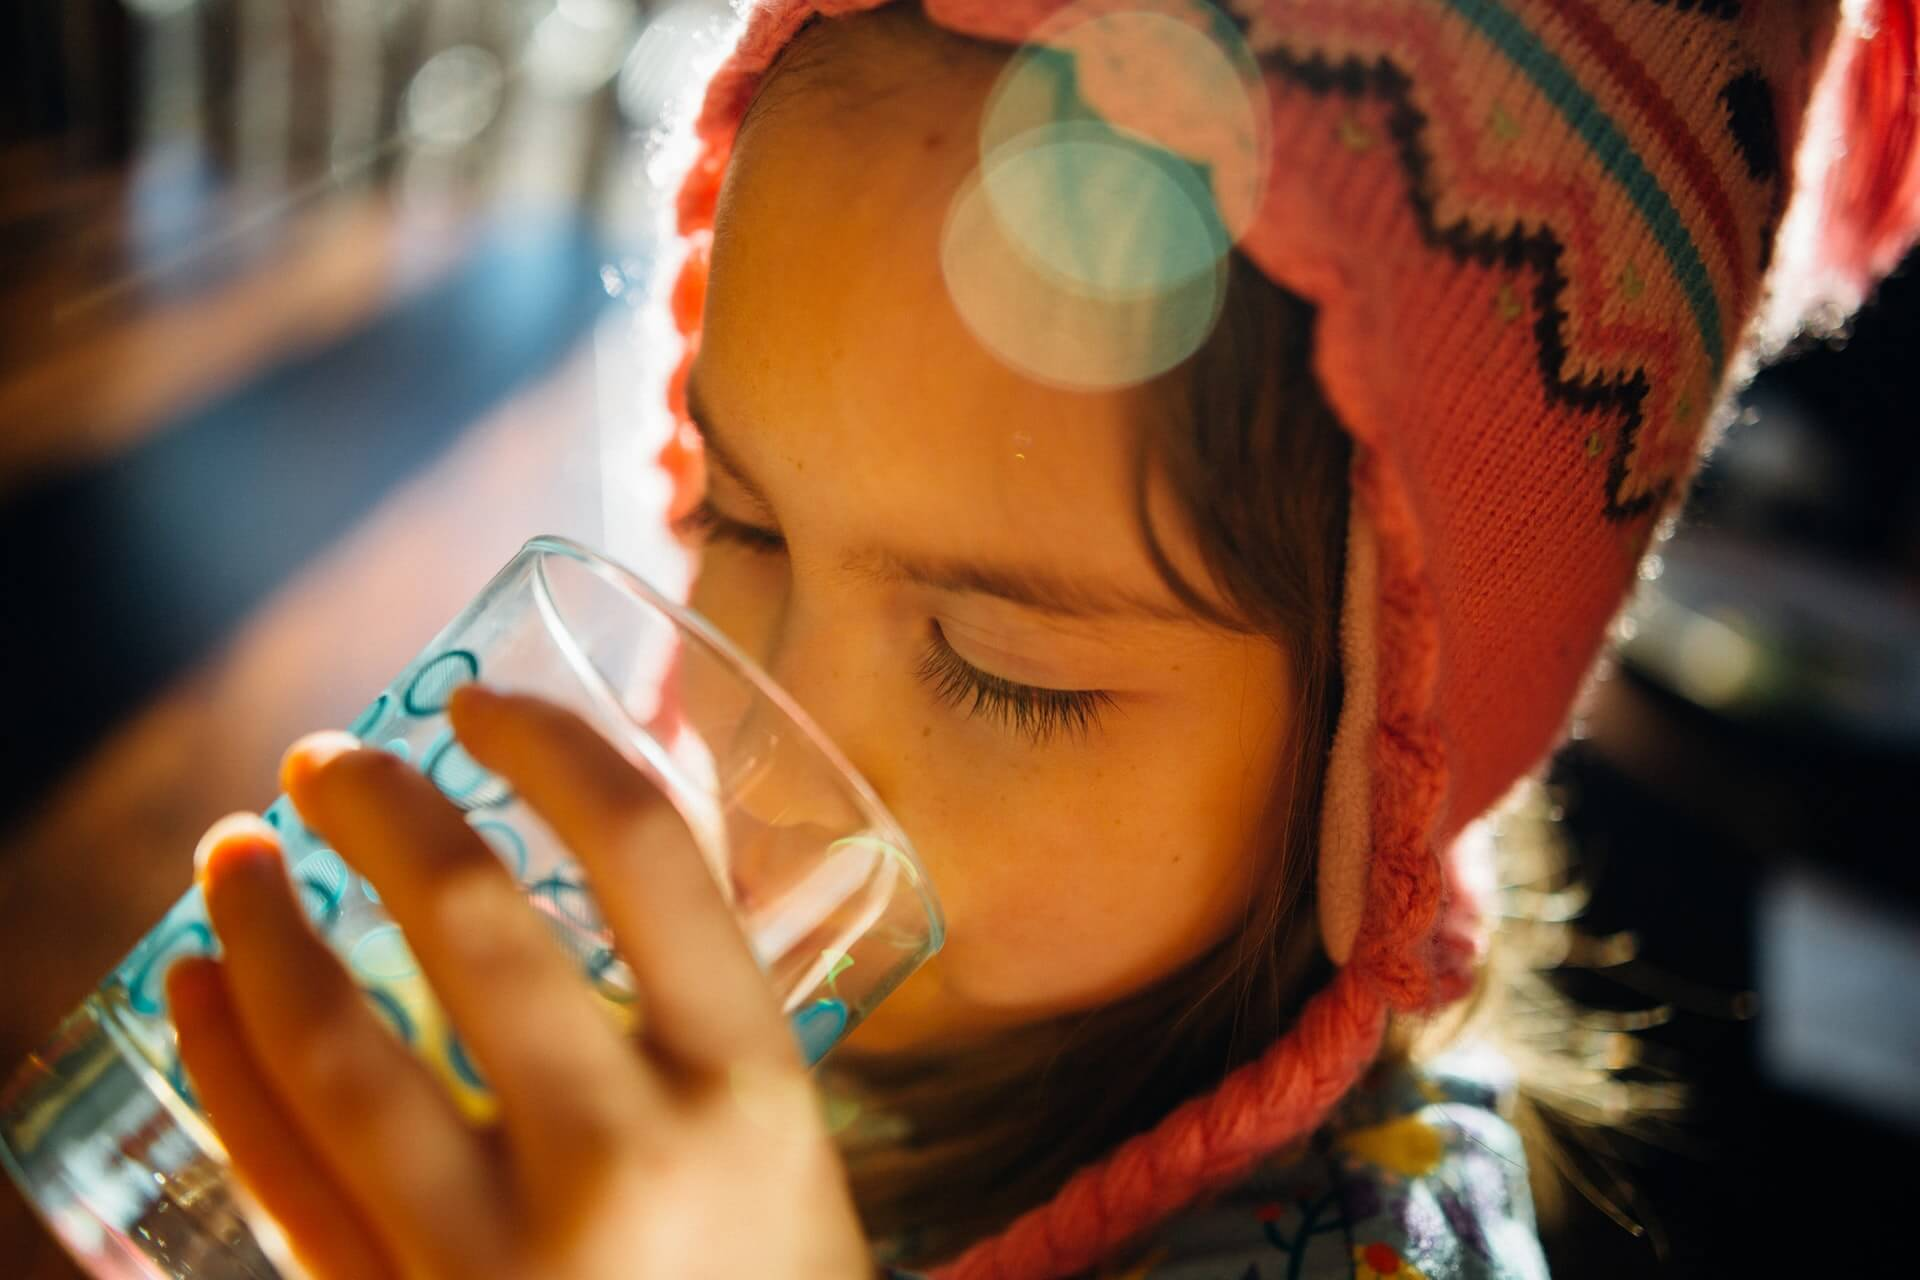 little girl wearing red hat drinking water from a clear glass